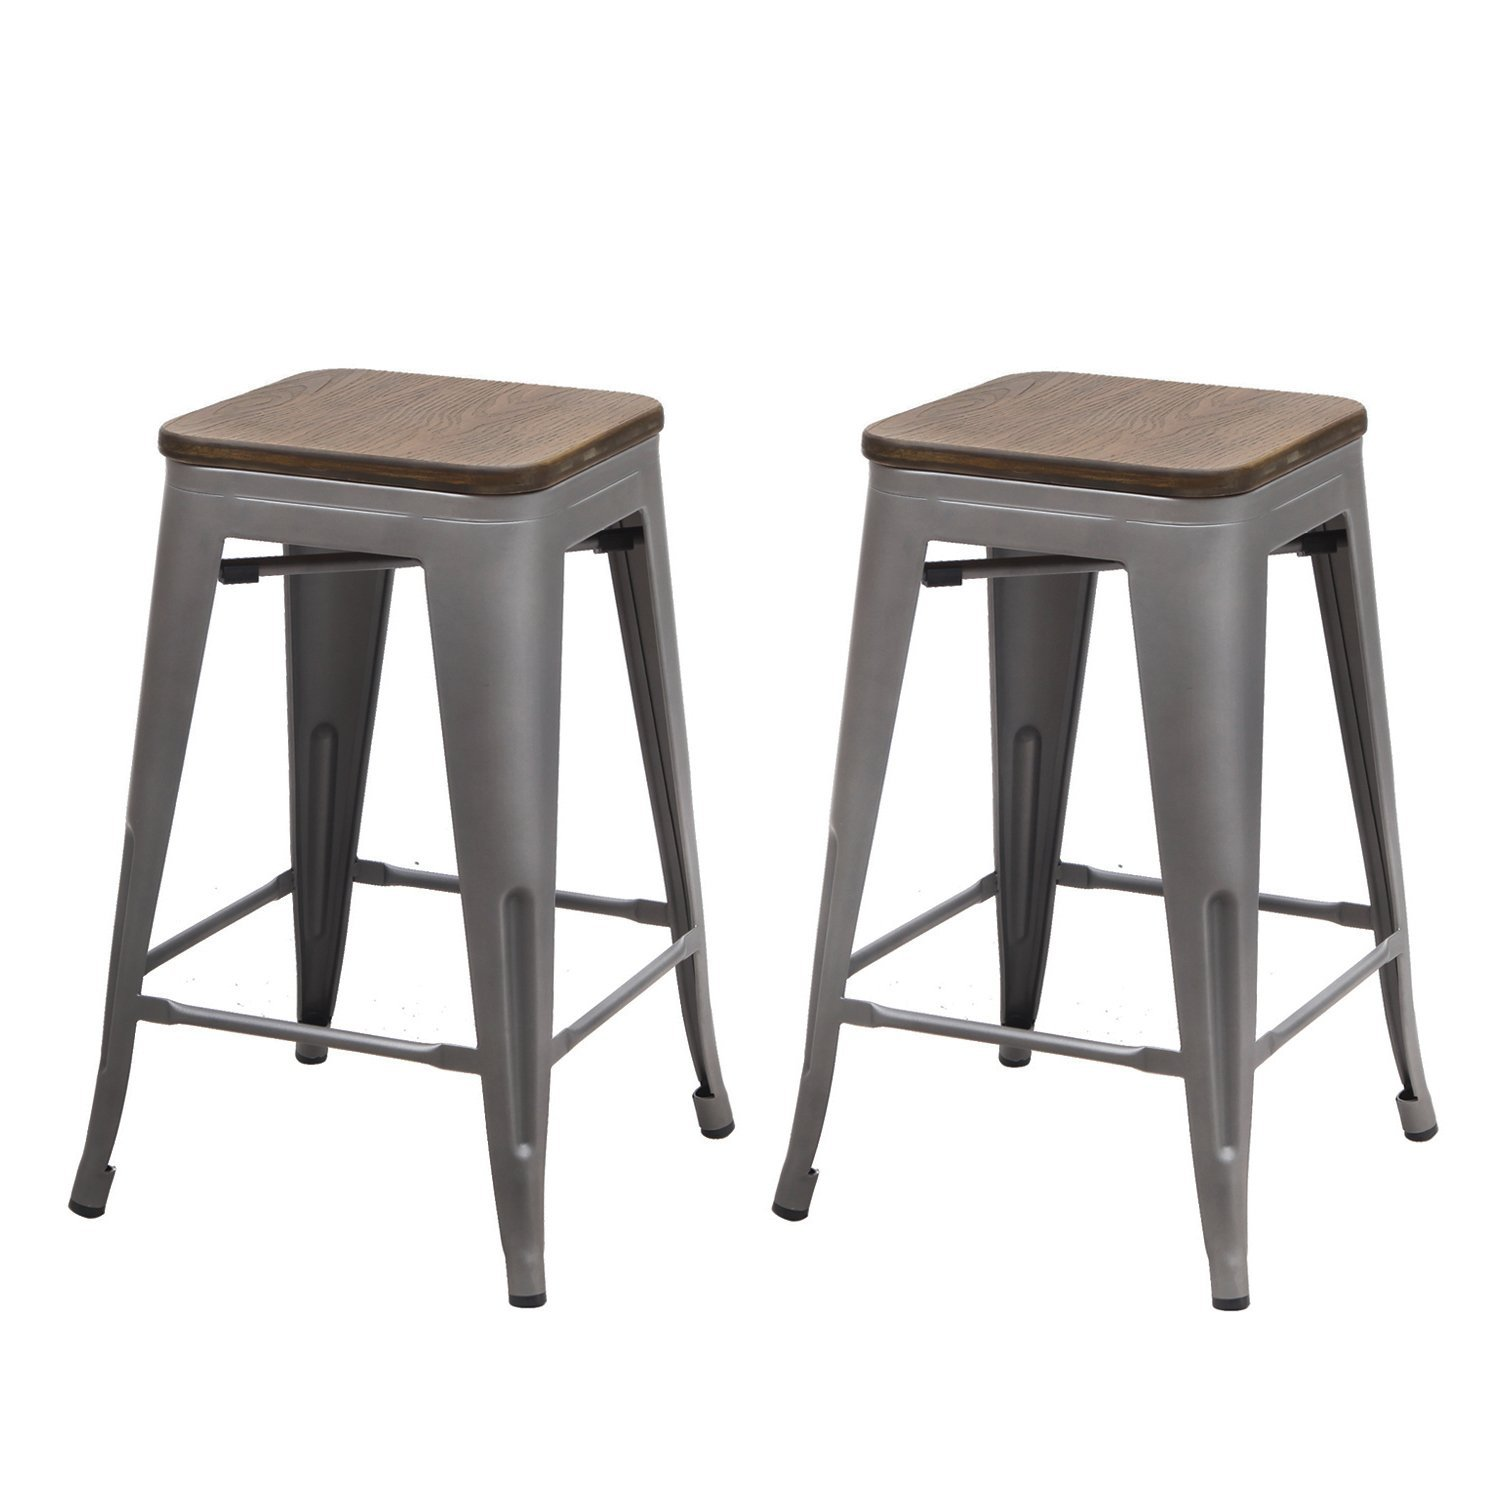 Adeco 24 Inch Metal Counter Stools Vintage Bamboo Seat